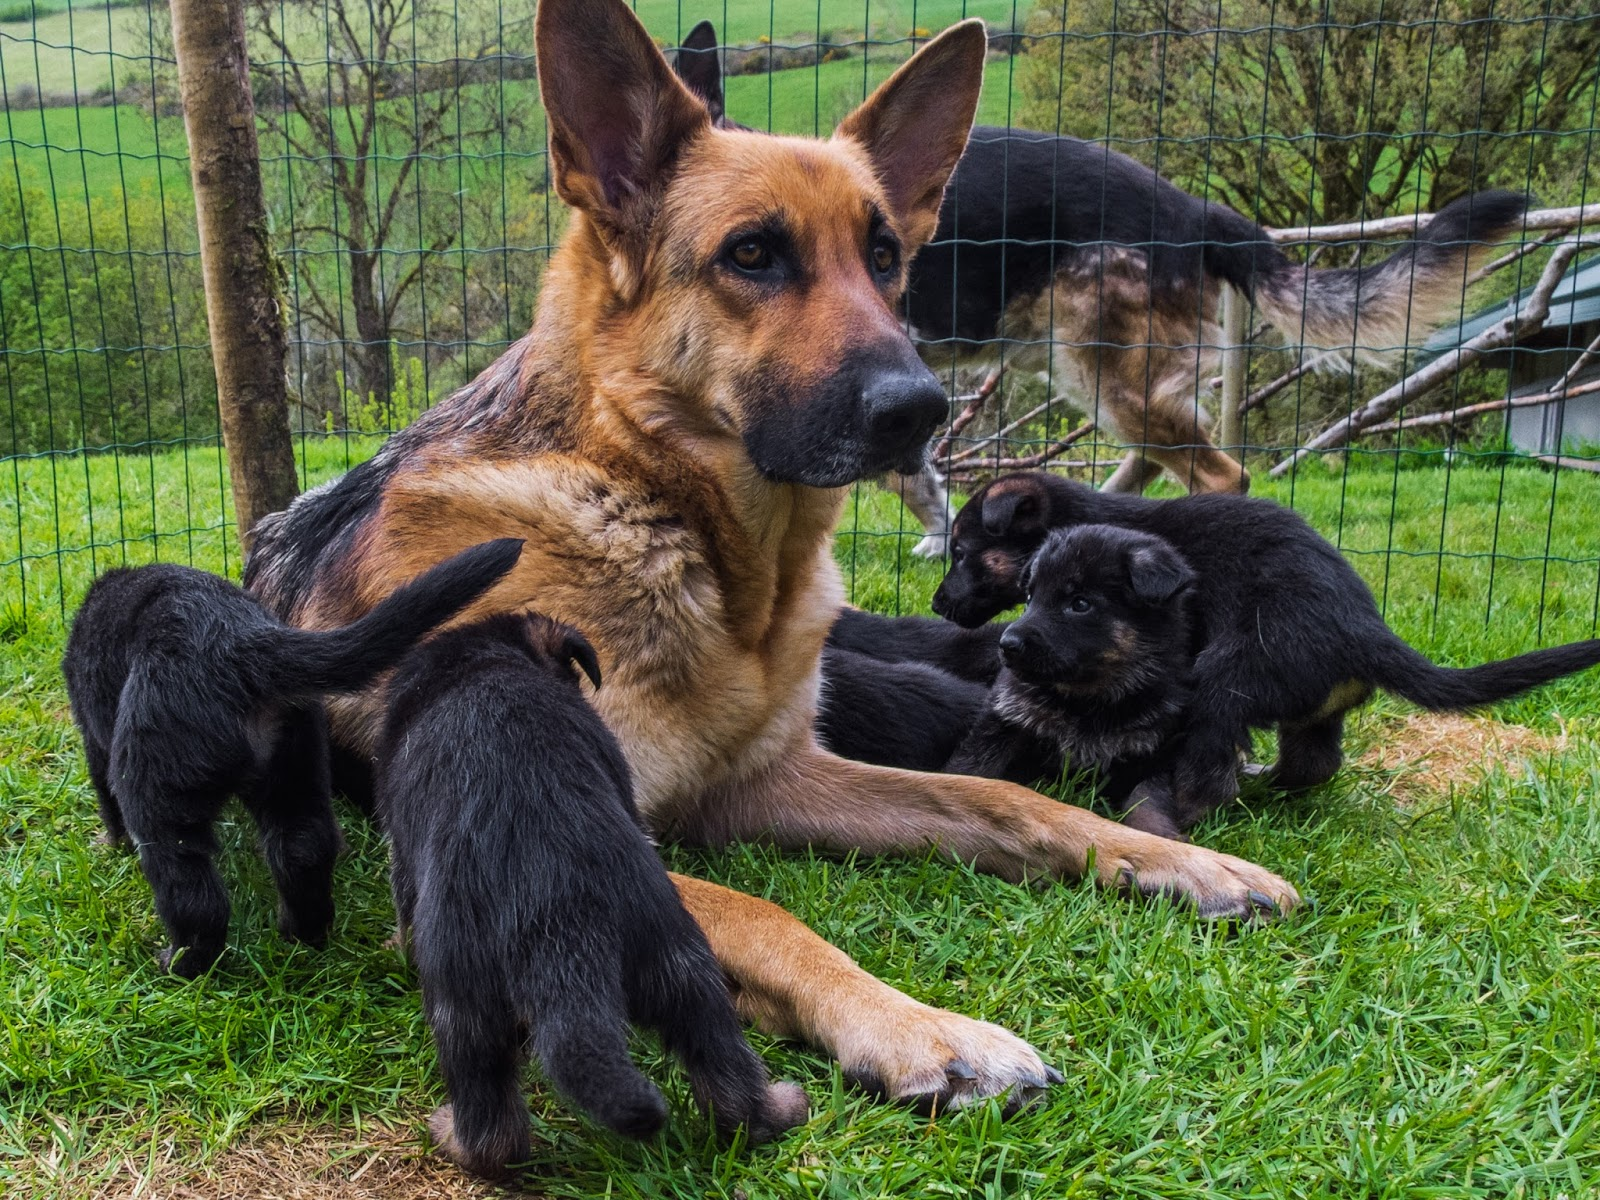 German Shepherd mom with her month old litter and dad in the background.